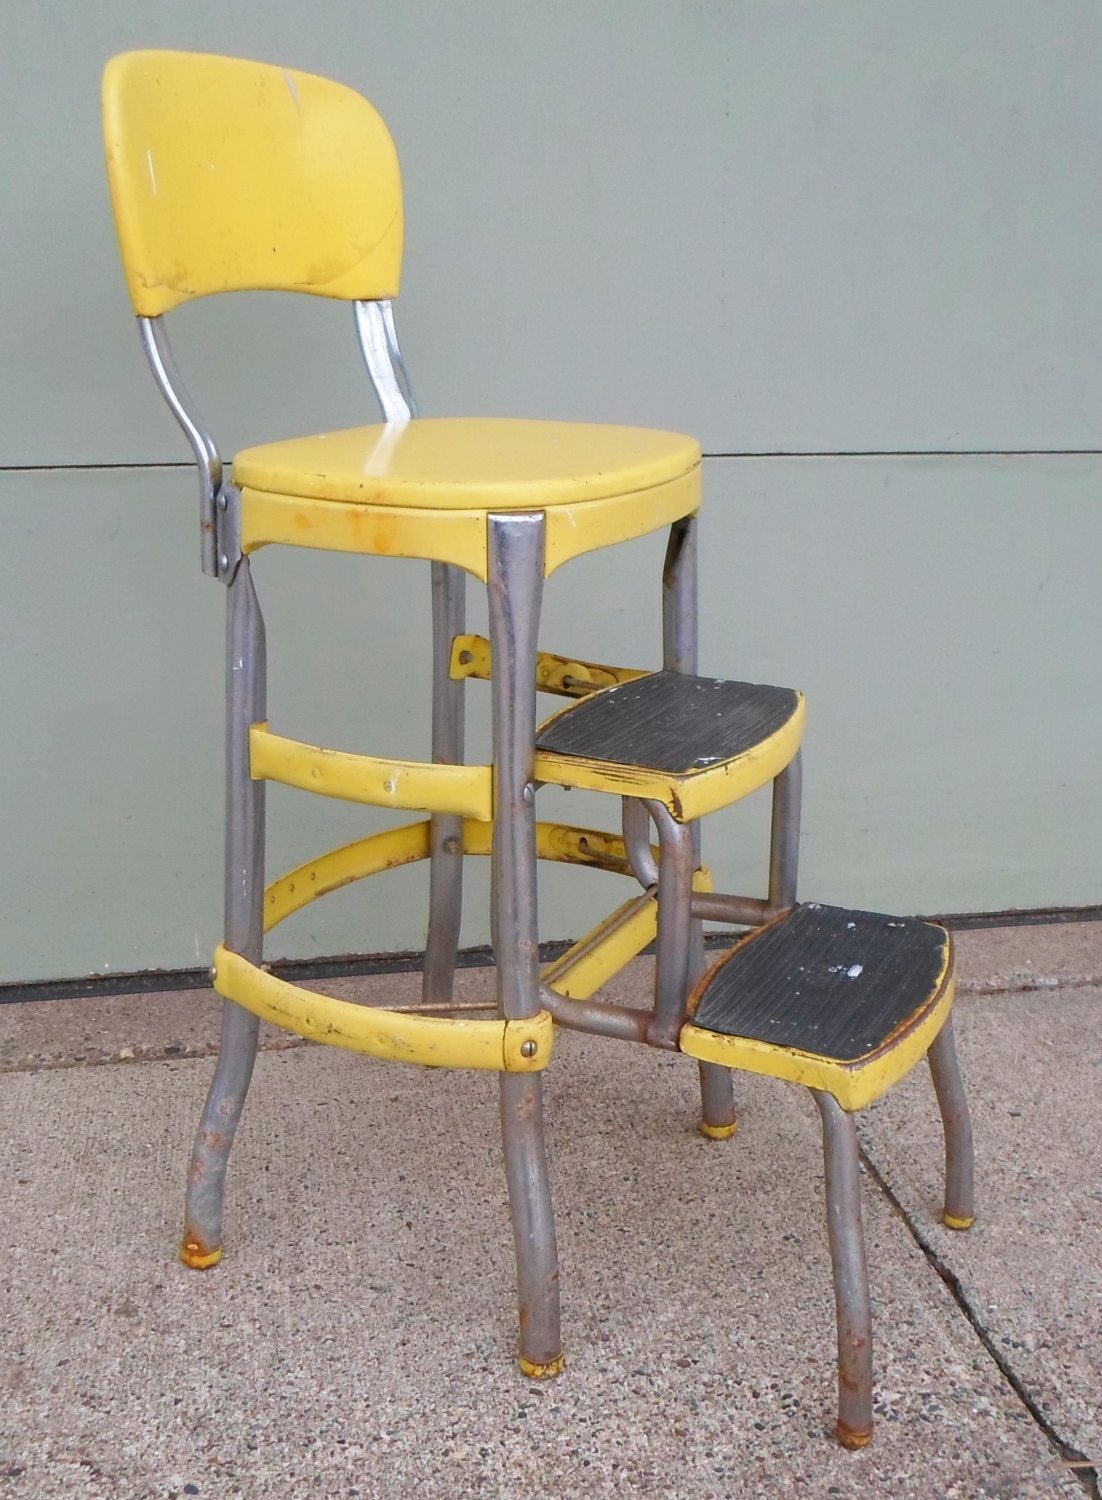 Genial Vintage Cosco Chair Step Stool Yellow Mid By Alsredesignvintage, $79.00